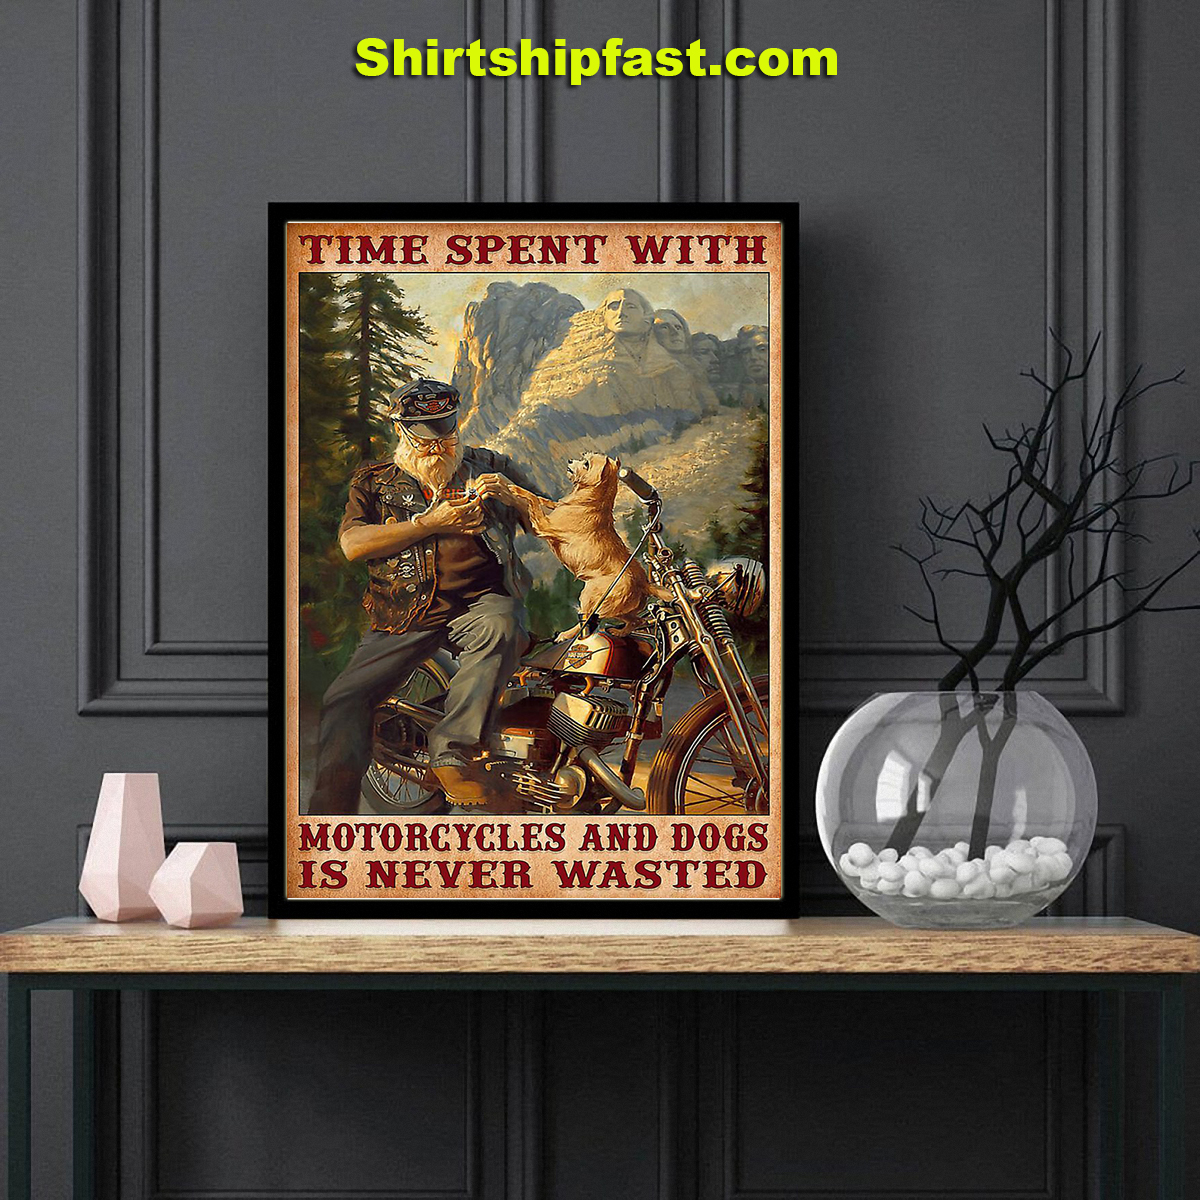 Time spent with motorcycles and dogs is never wasted poster